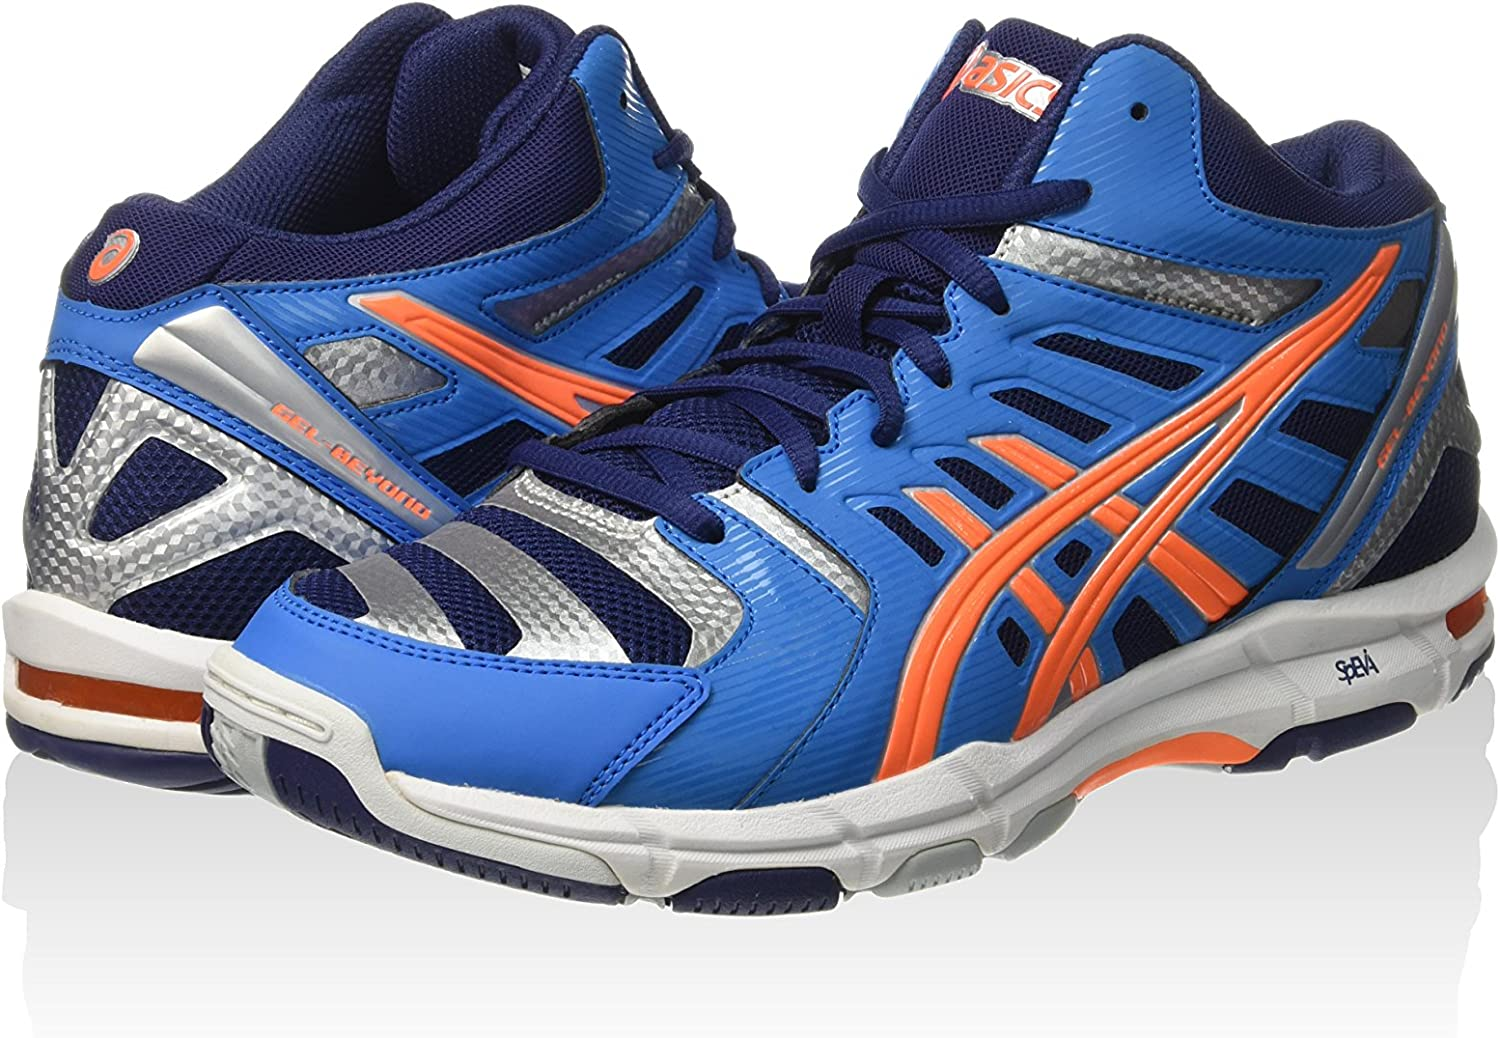 ASICS Gel Beyond 4 MT B403n 4130, Chaussures de Volleyball Mixte Adulte